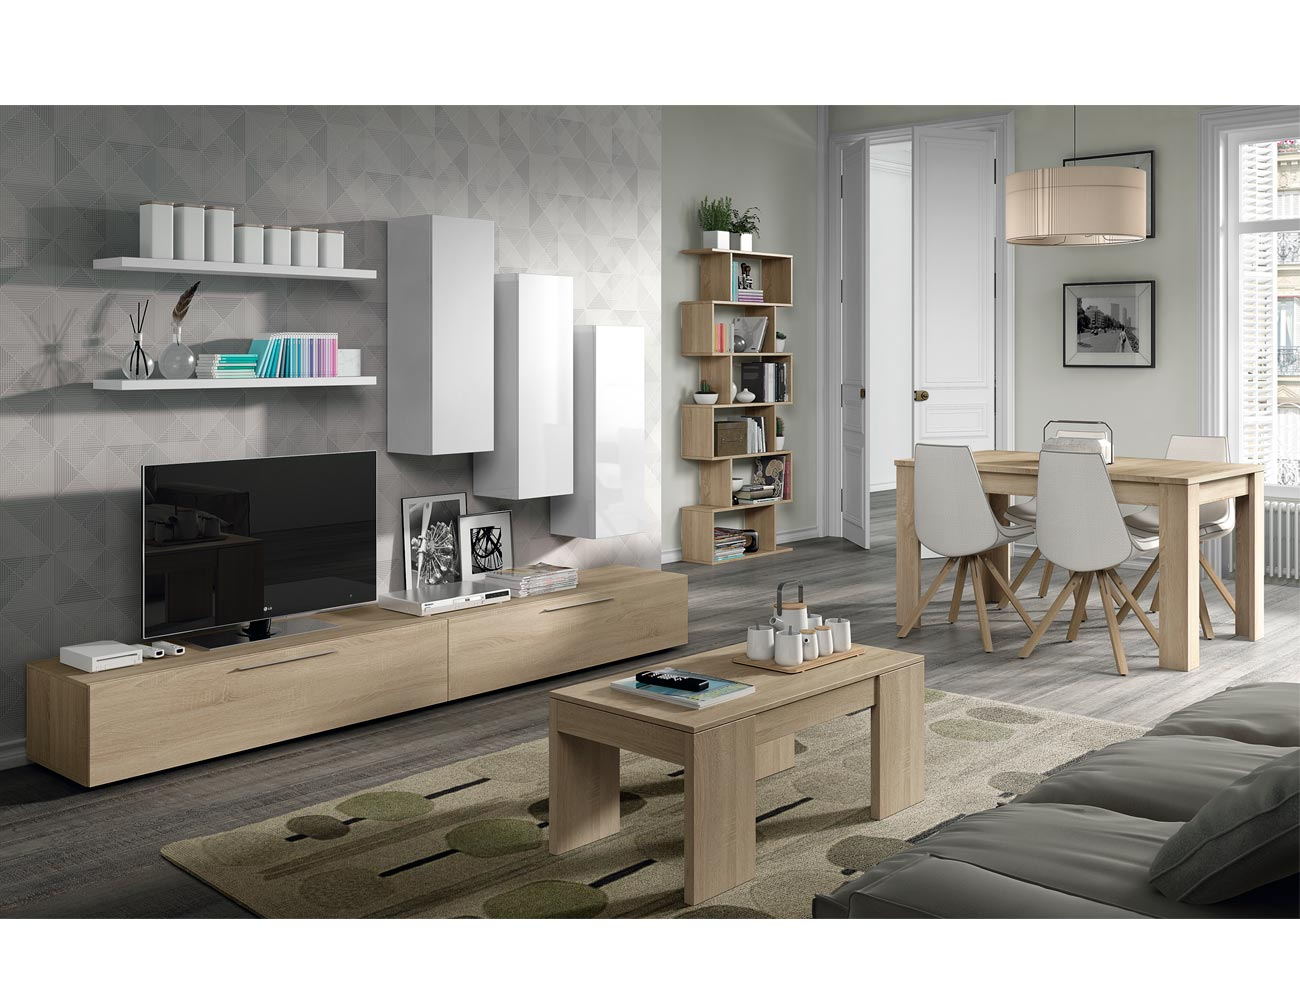 Mueble salon moderno roble blanco 2